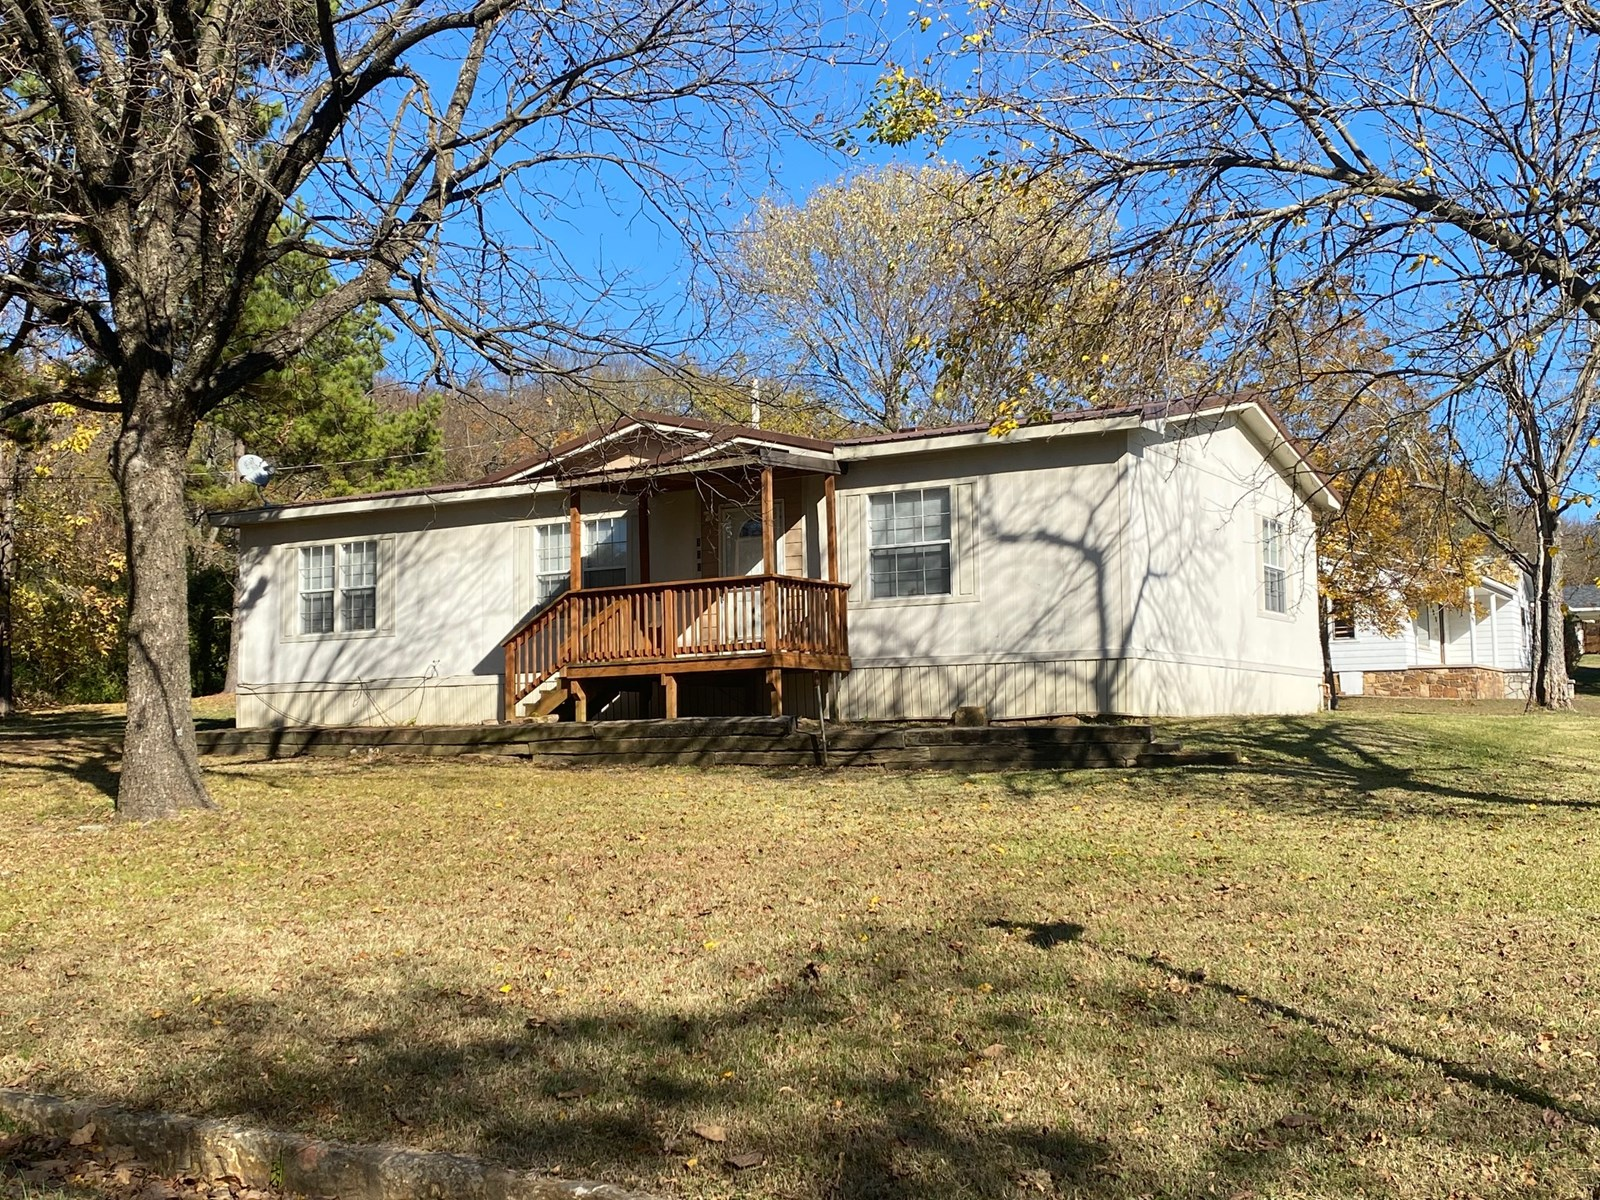 Home for Sale- Wilburton, Oklahoma